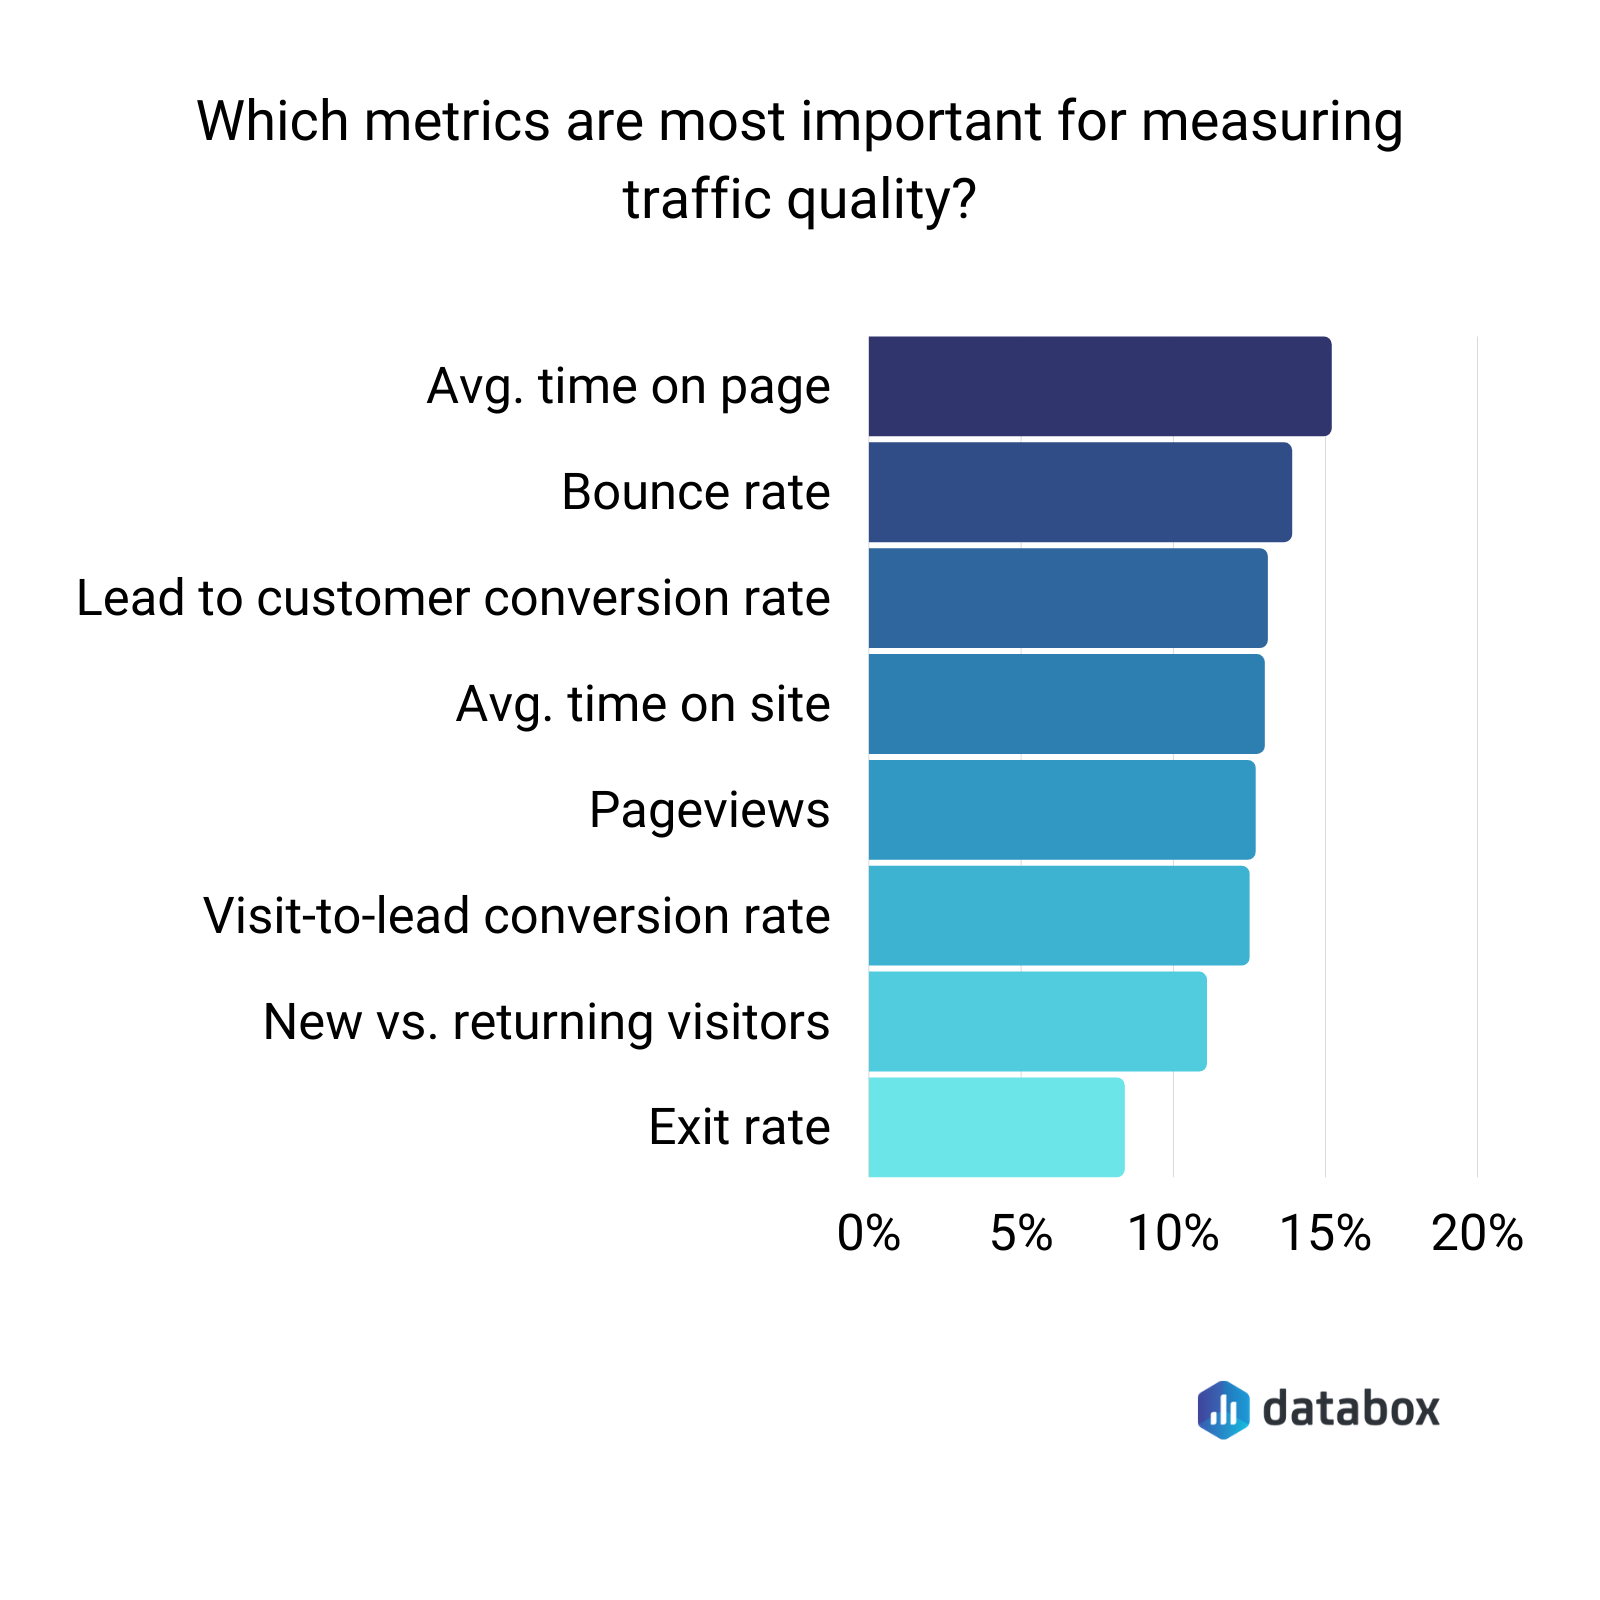 What metrics are most important for measuring traffic quality?